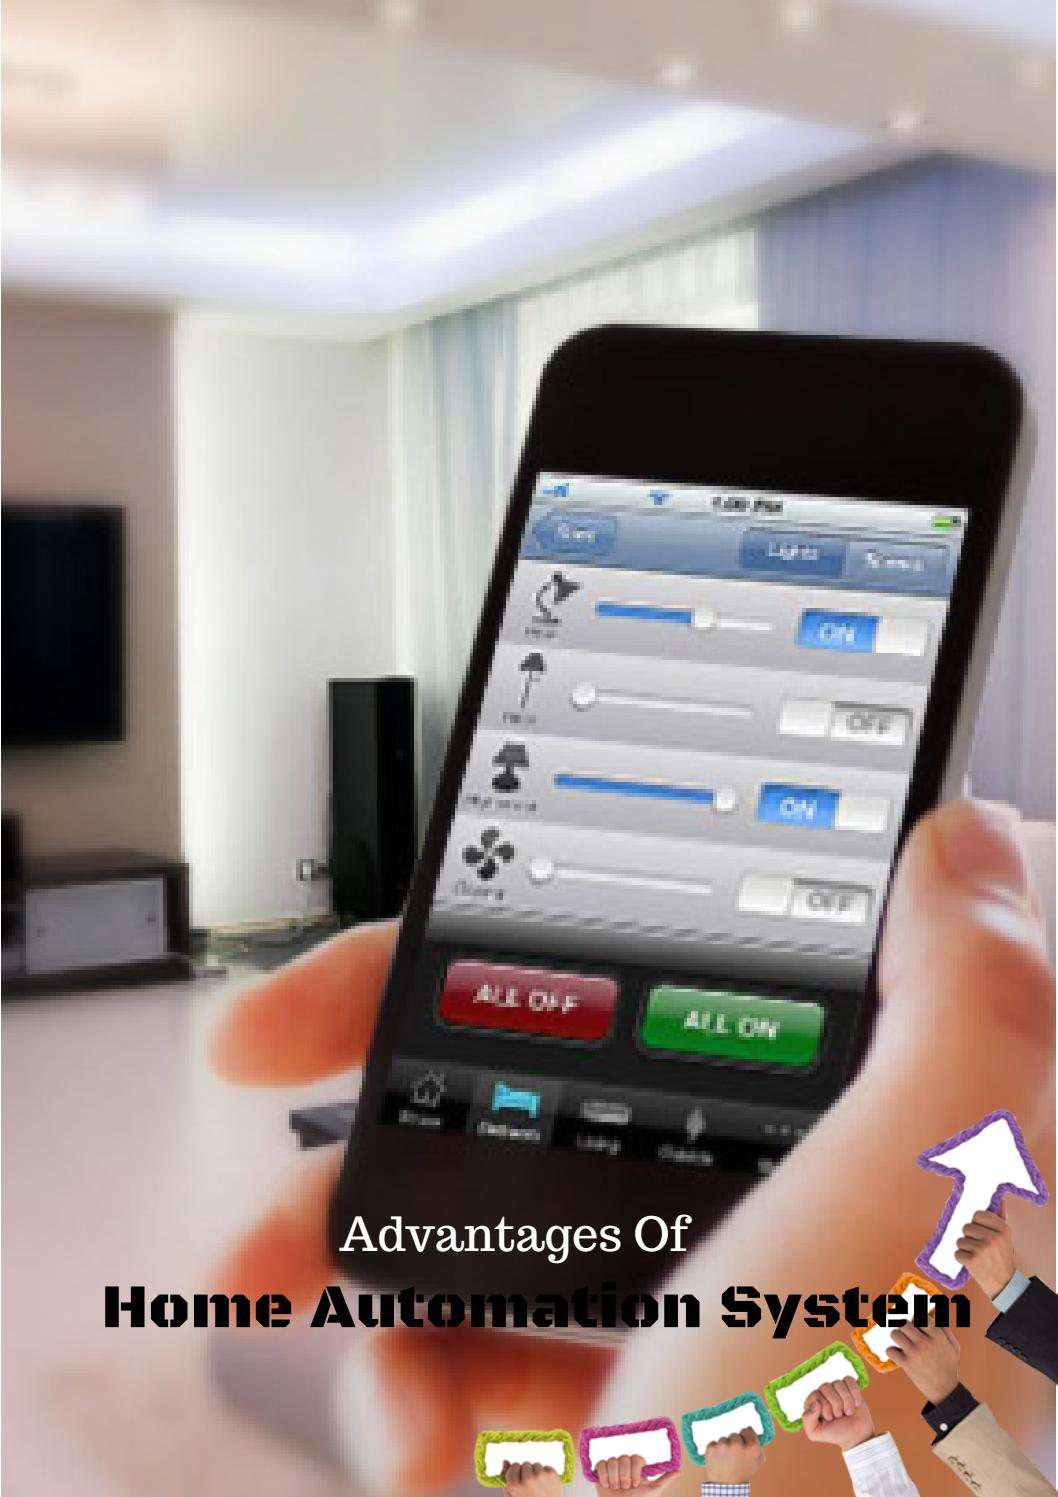 Advantages Of Home Automation advantages of a home automation systemcw electrical